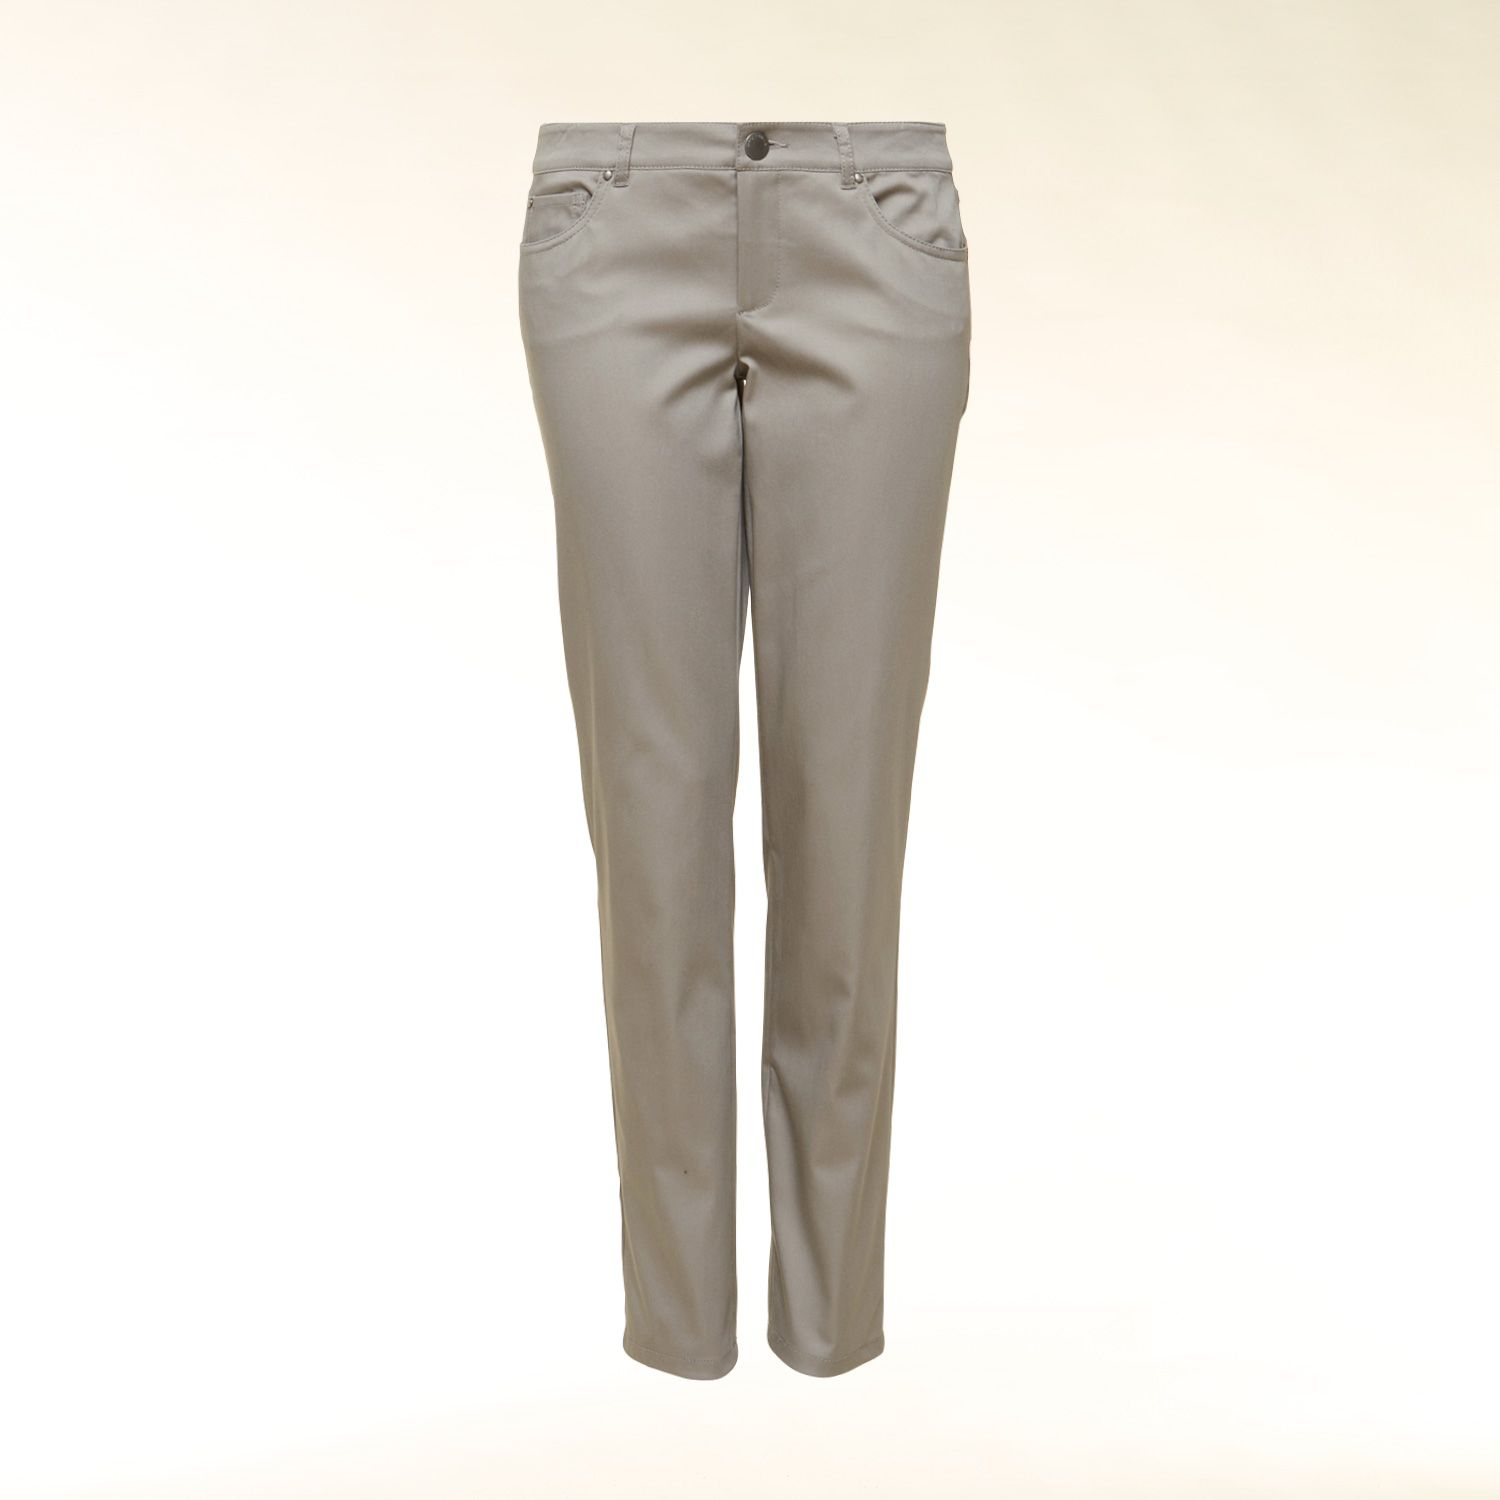 Cotton sateen jean shape trousers